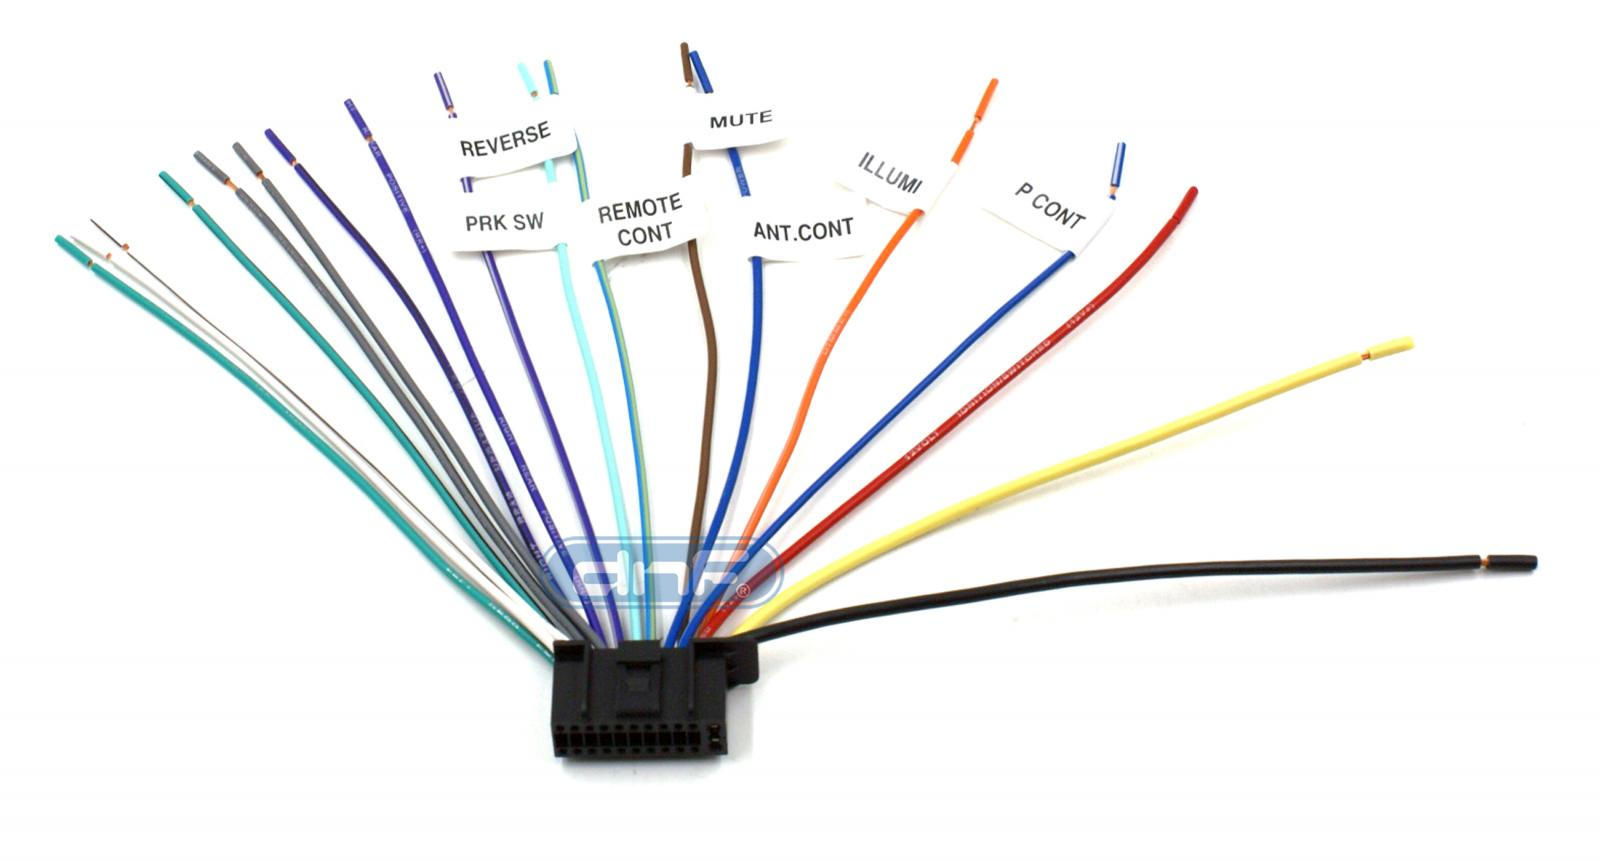 hight resolution of details about kenwood ddx 6019 kvt 512 kvt 514 kvt 516 wiring harness wire harness copper